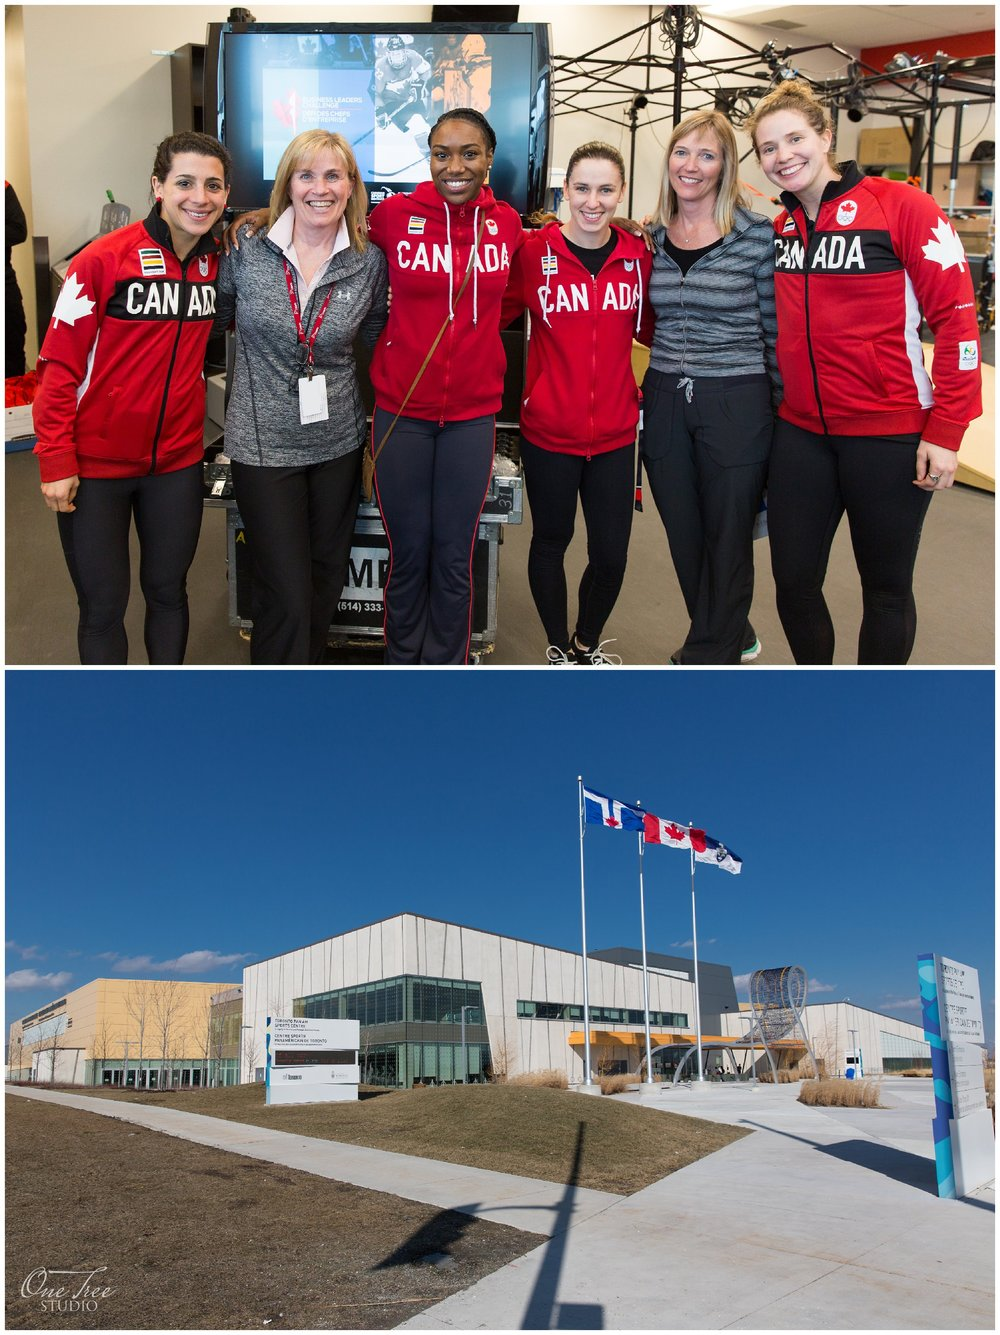 Toronto Event Photographer | Pan Am Sports Centre | One Tree Studio Inc.